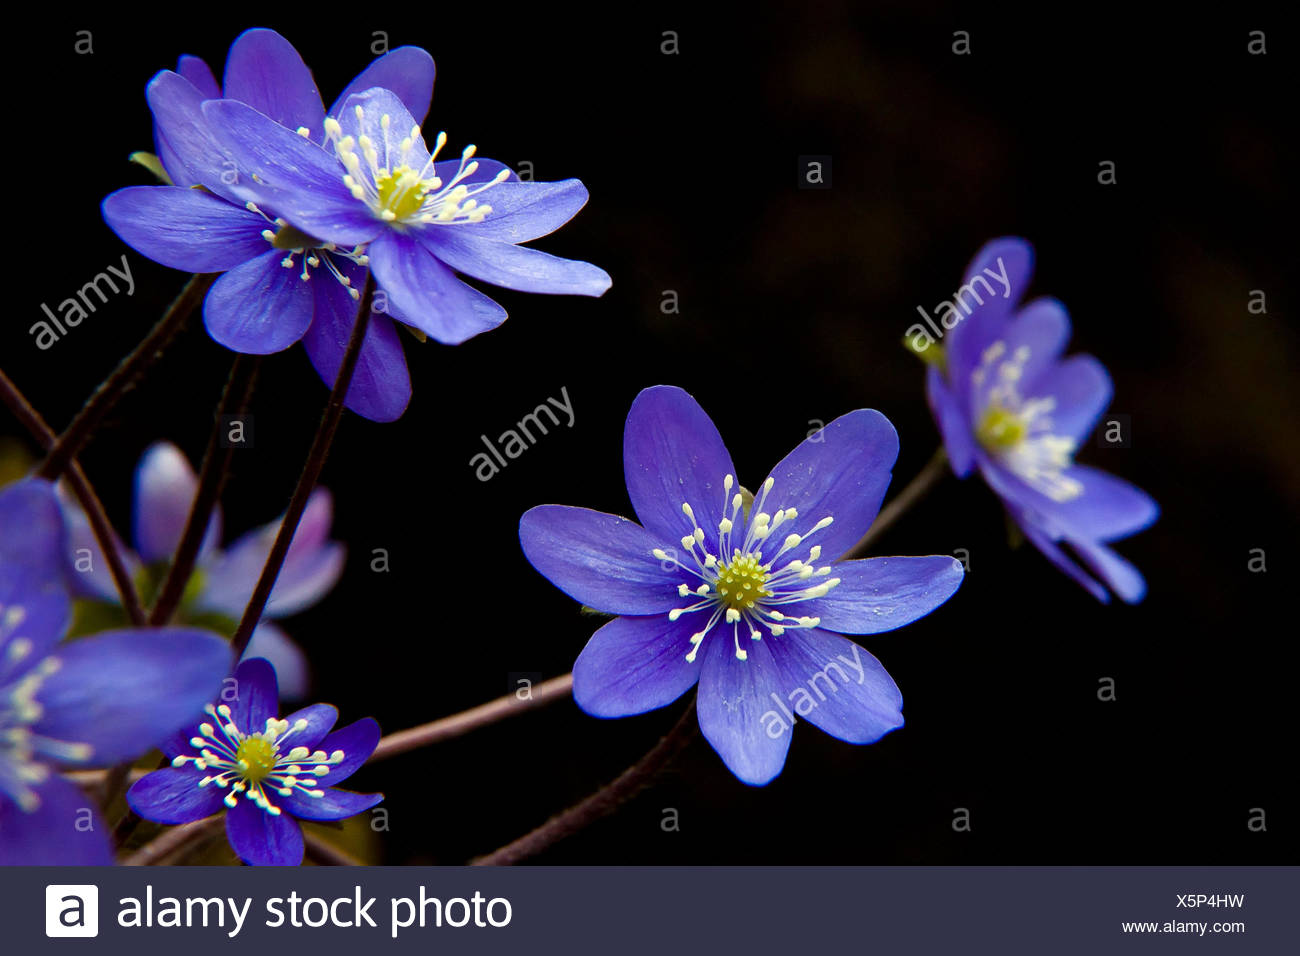 Hepatica, liverleaf, liverwort, is a genus of herbaceous perennials in the buttercup family, native to central and northern Europe, Asia and eastern North America. Lombardy Italy Europe Stock Photo